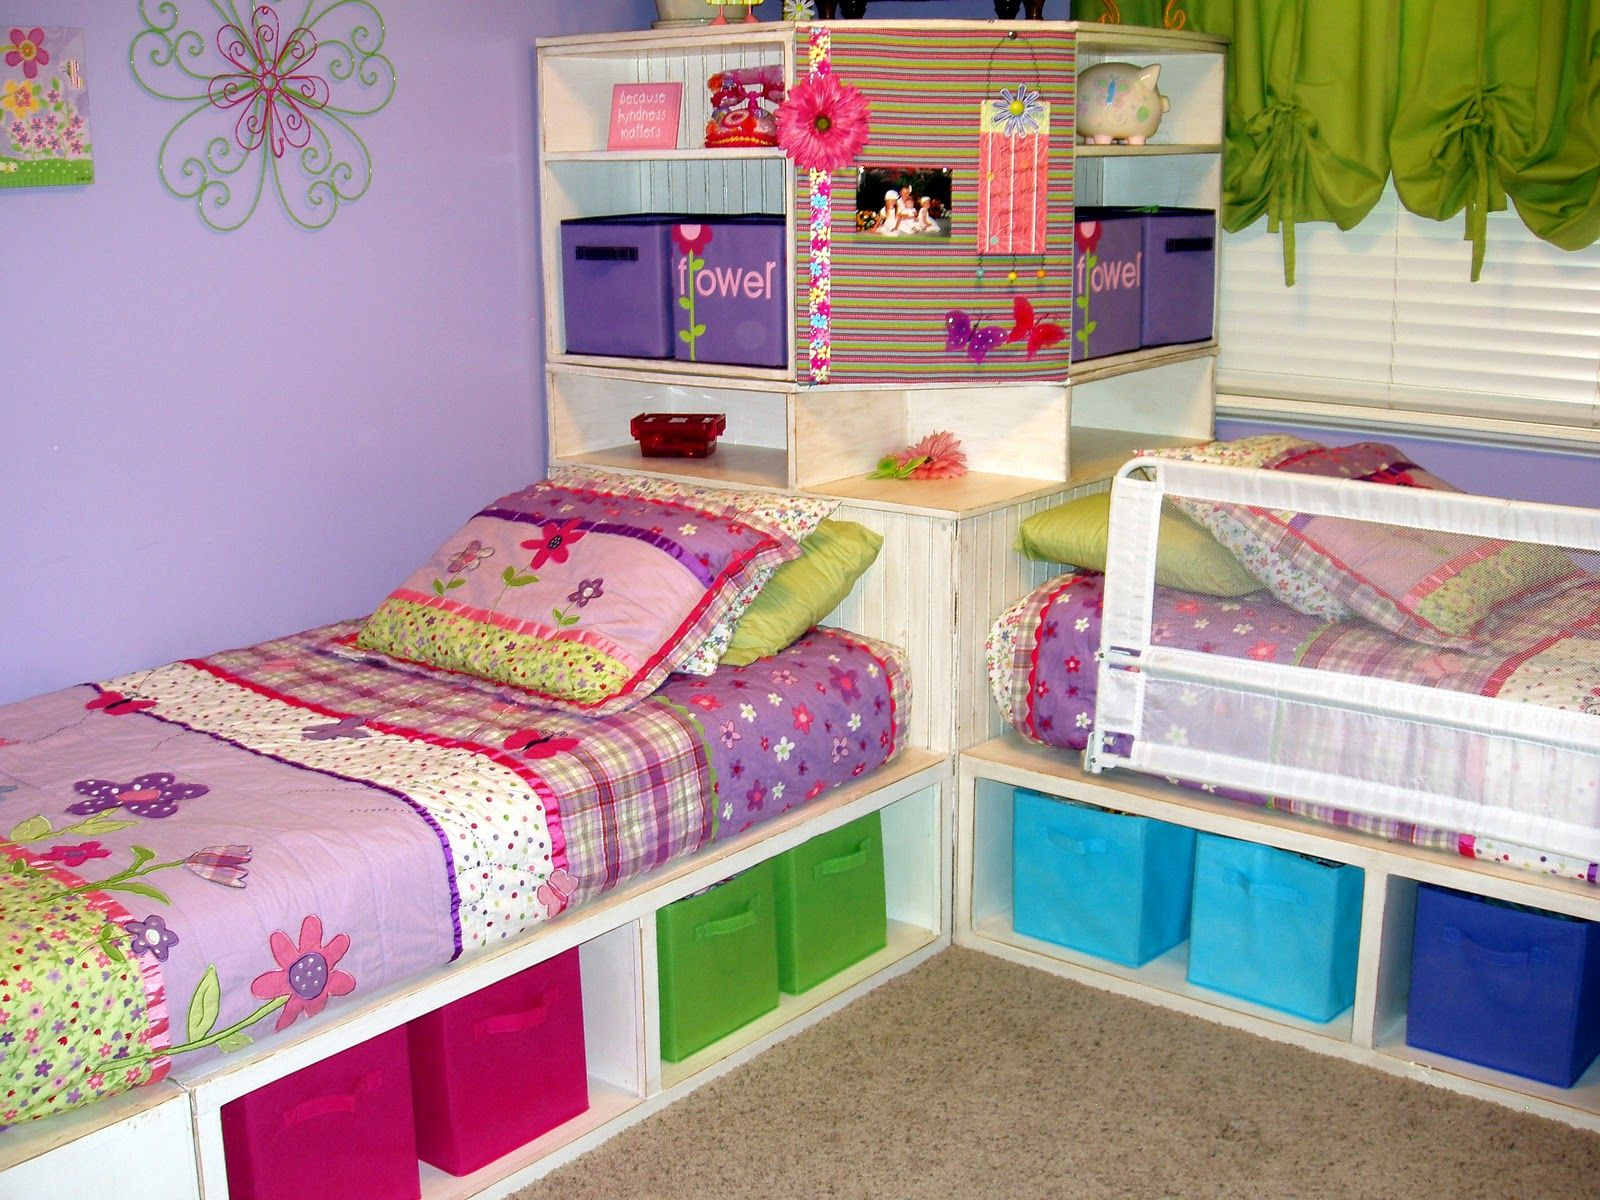 Powell White Twin Bedroom In A Box: Cute White Built In Beds Custom Design With Shelving For